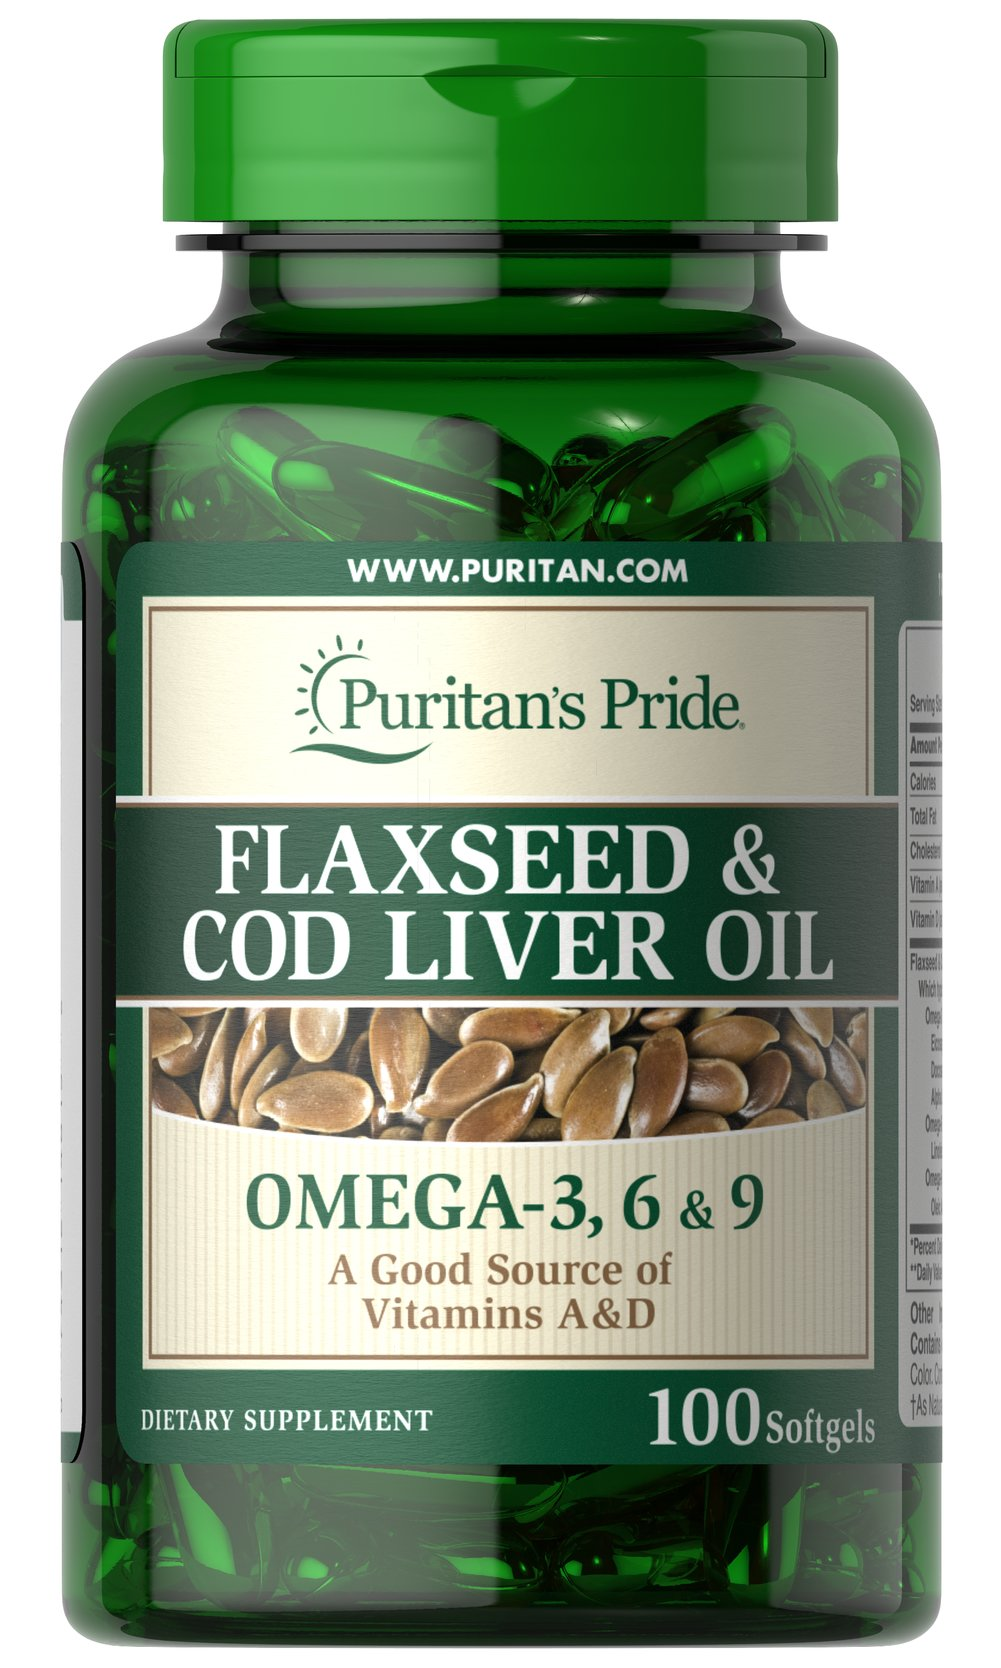 Flaxseed & Cod Liver Oil 1000 mg Omega 3, 6 & 9 Thumbnail Alternate Bottle View